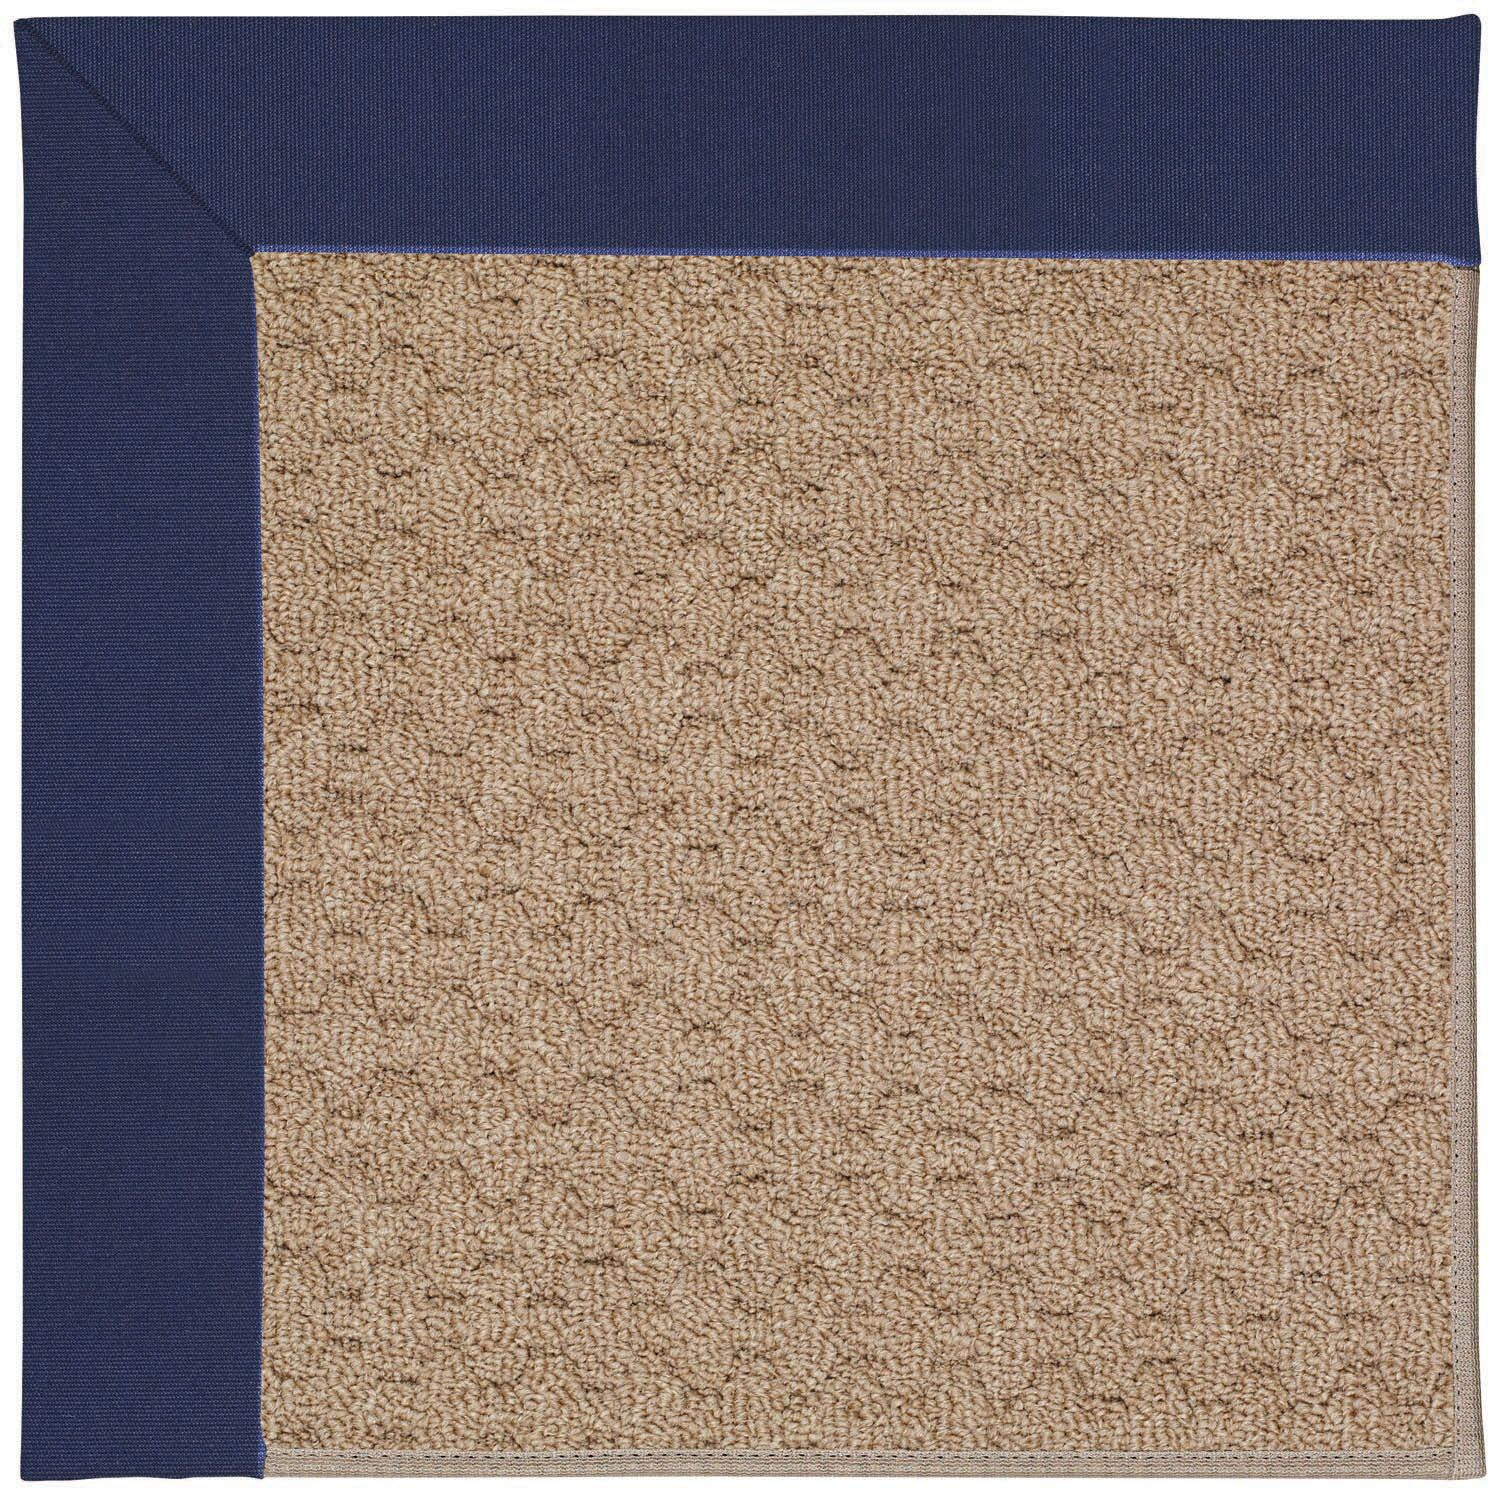 Lisle Machine Tufted Navy/Brown Indoor/Outdoor Area Rug Rug Size: Rectangle 9' x 12'